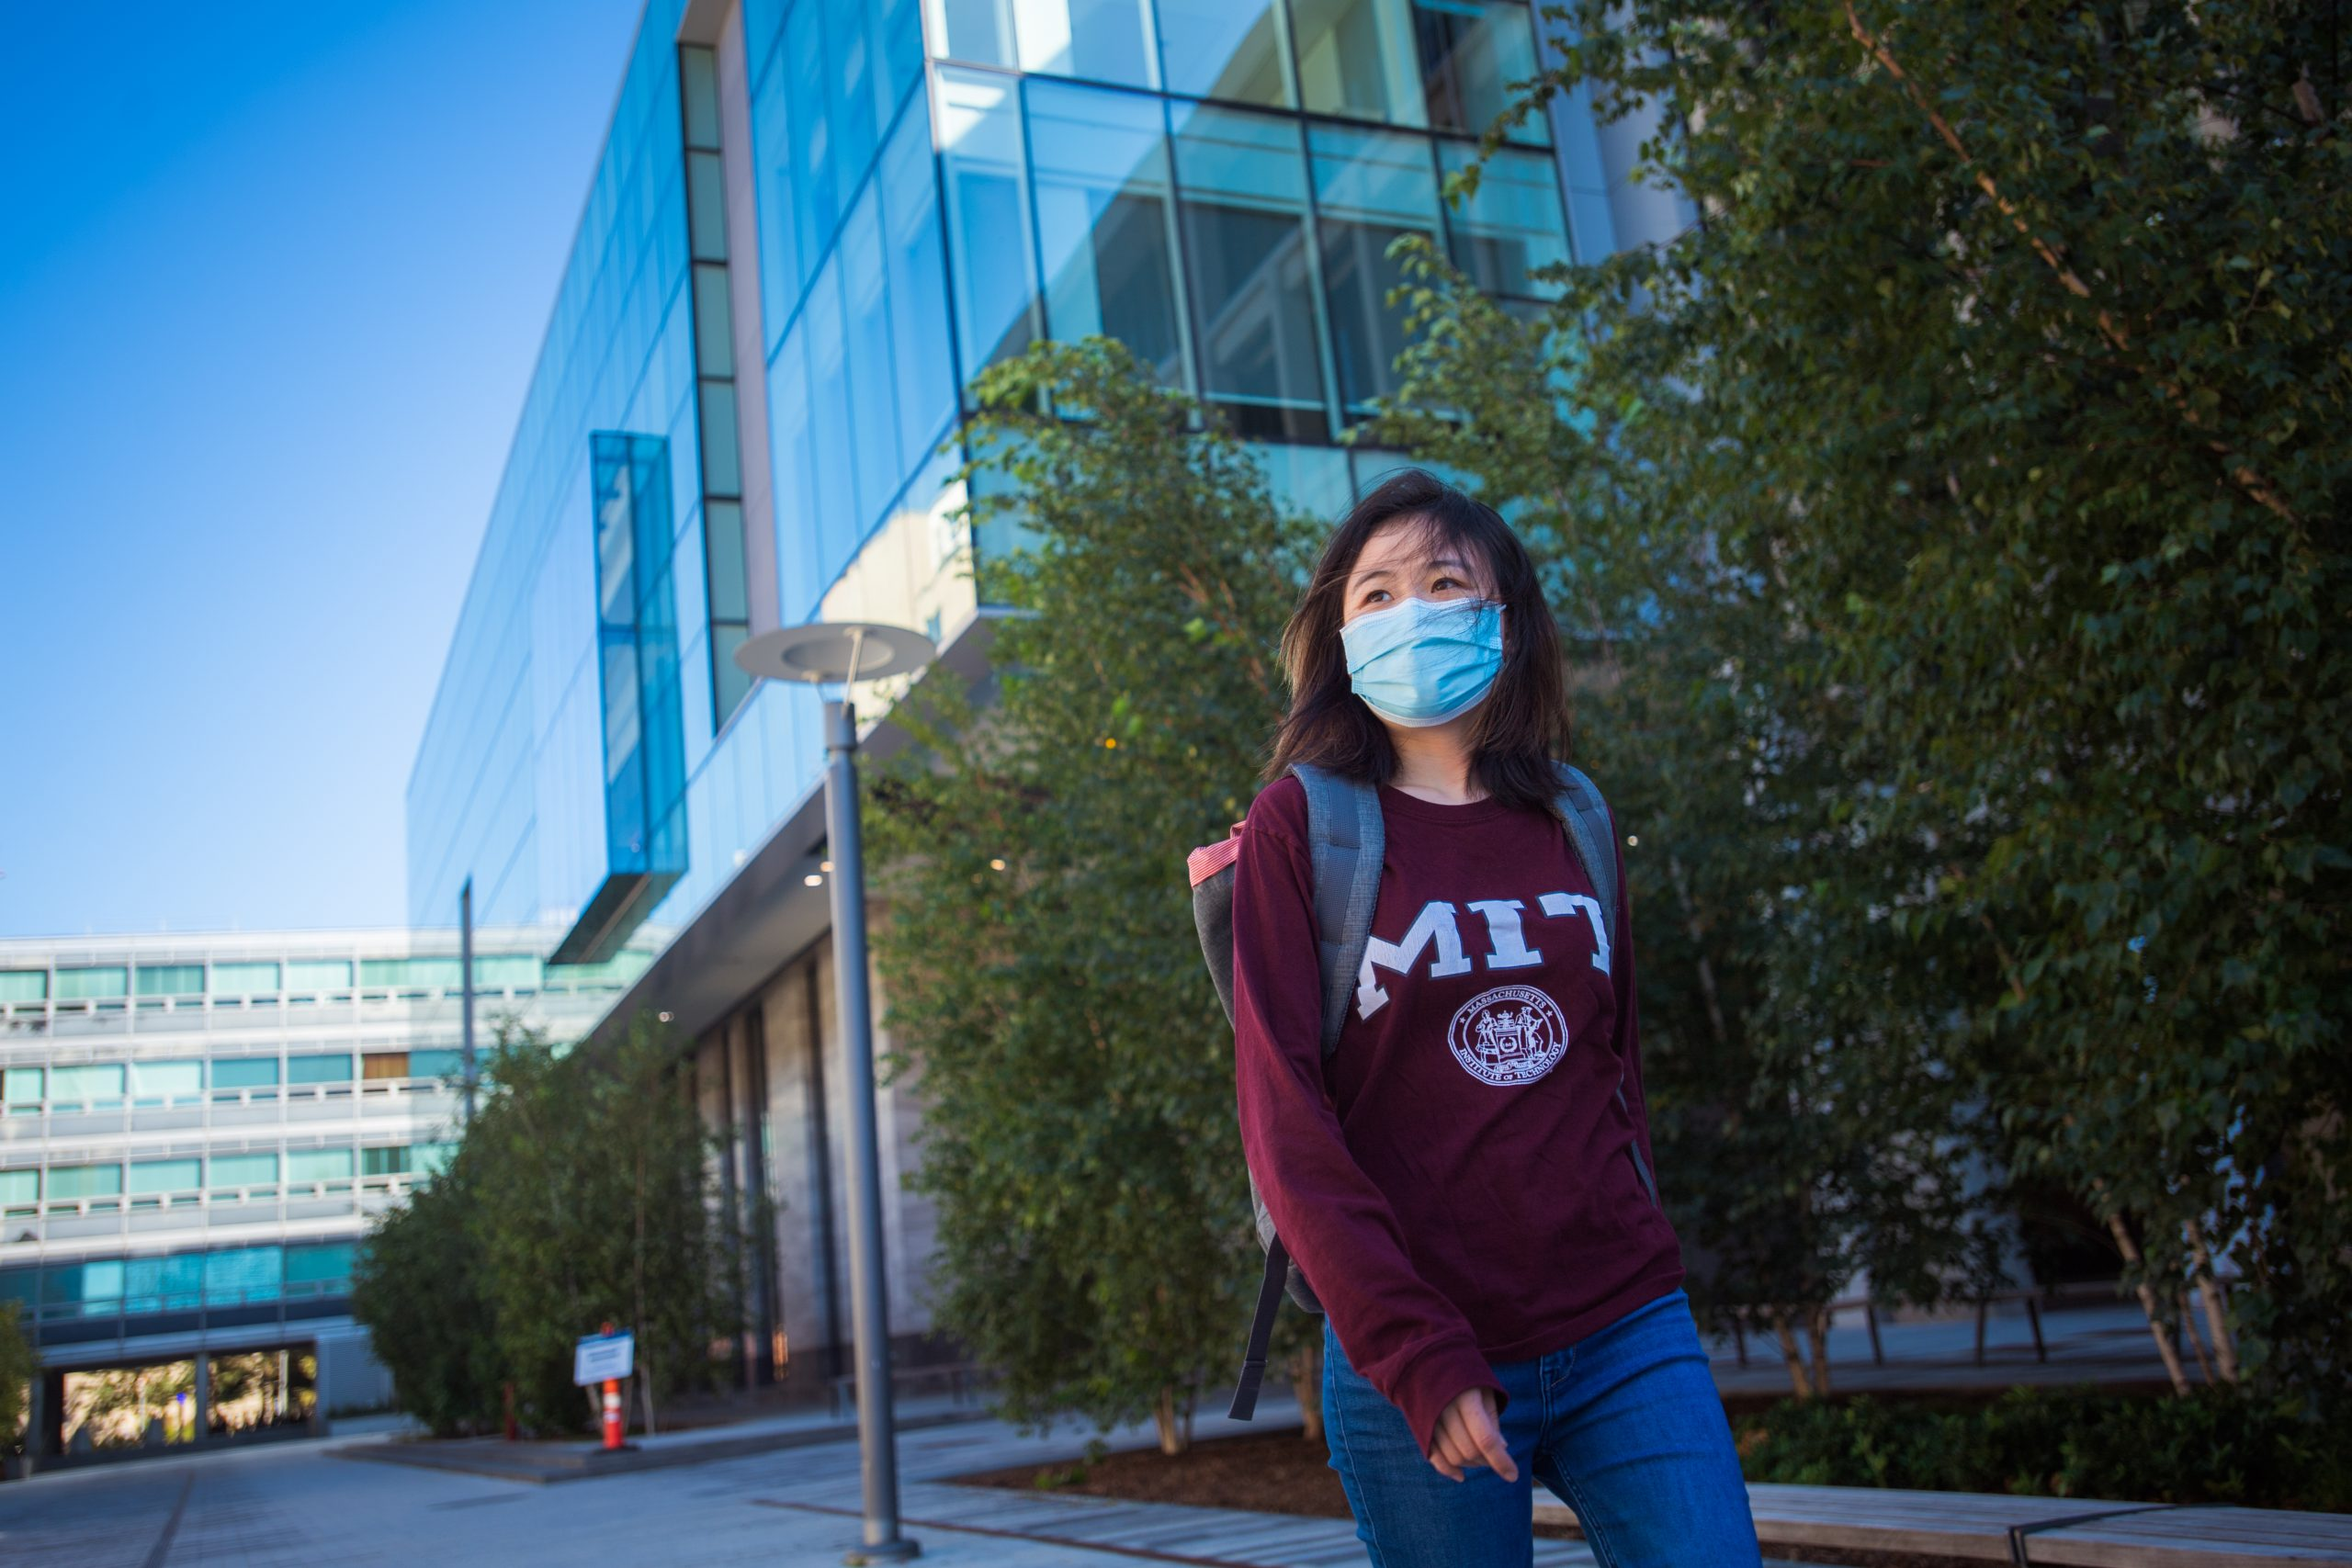 MIT student in disposable COVID mask